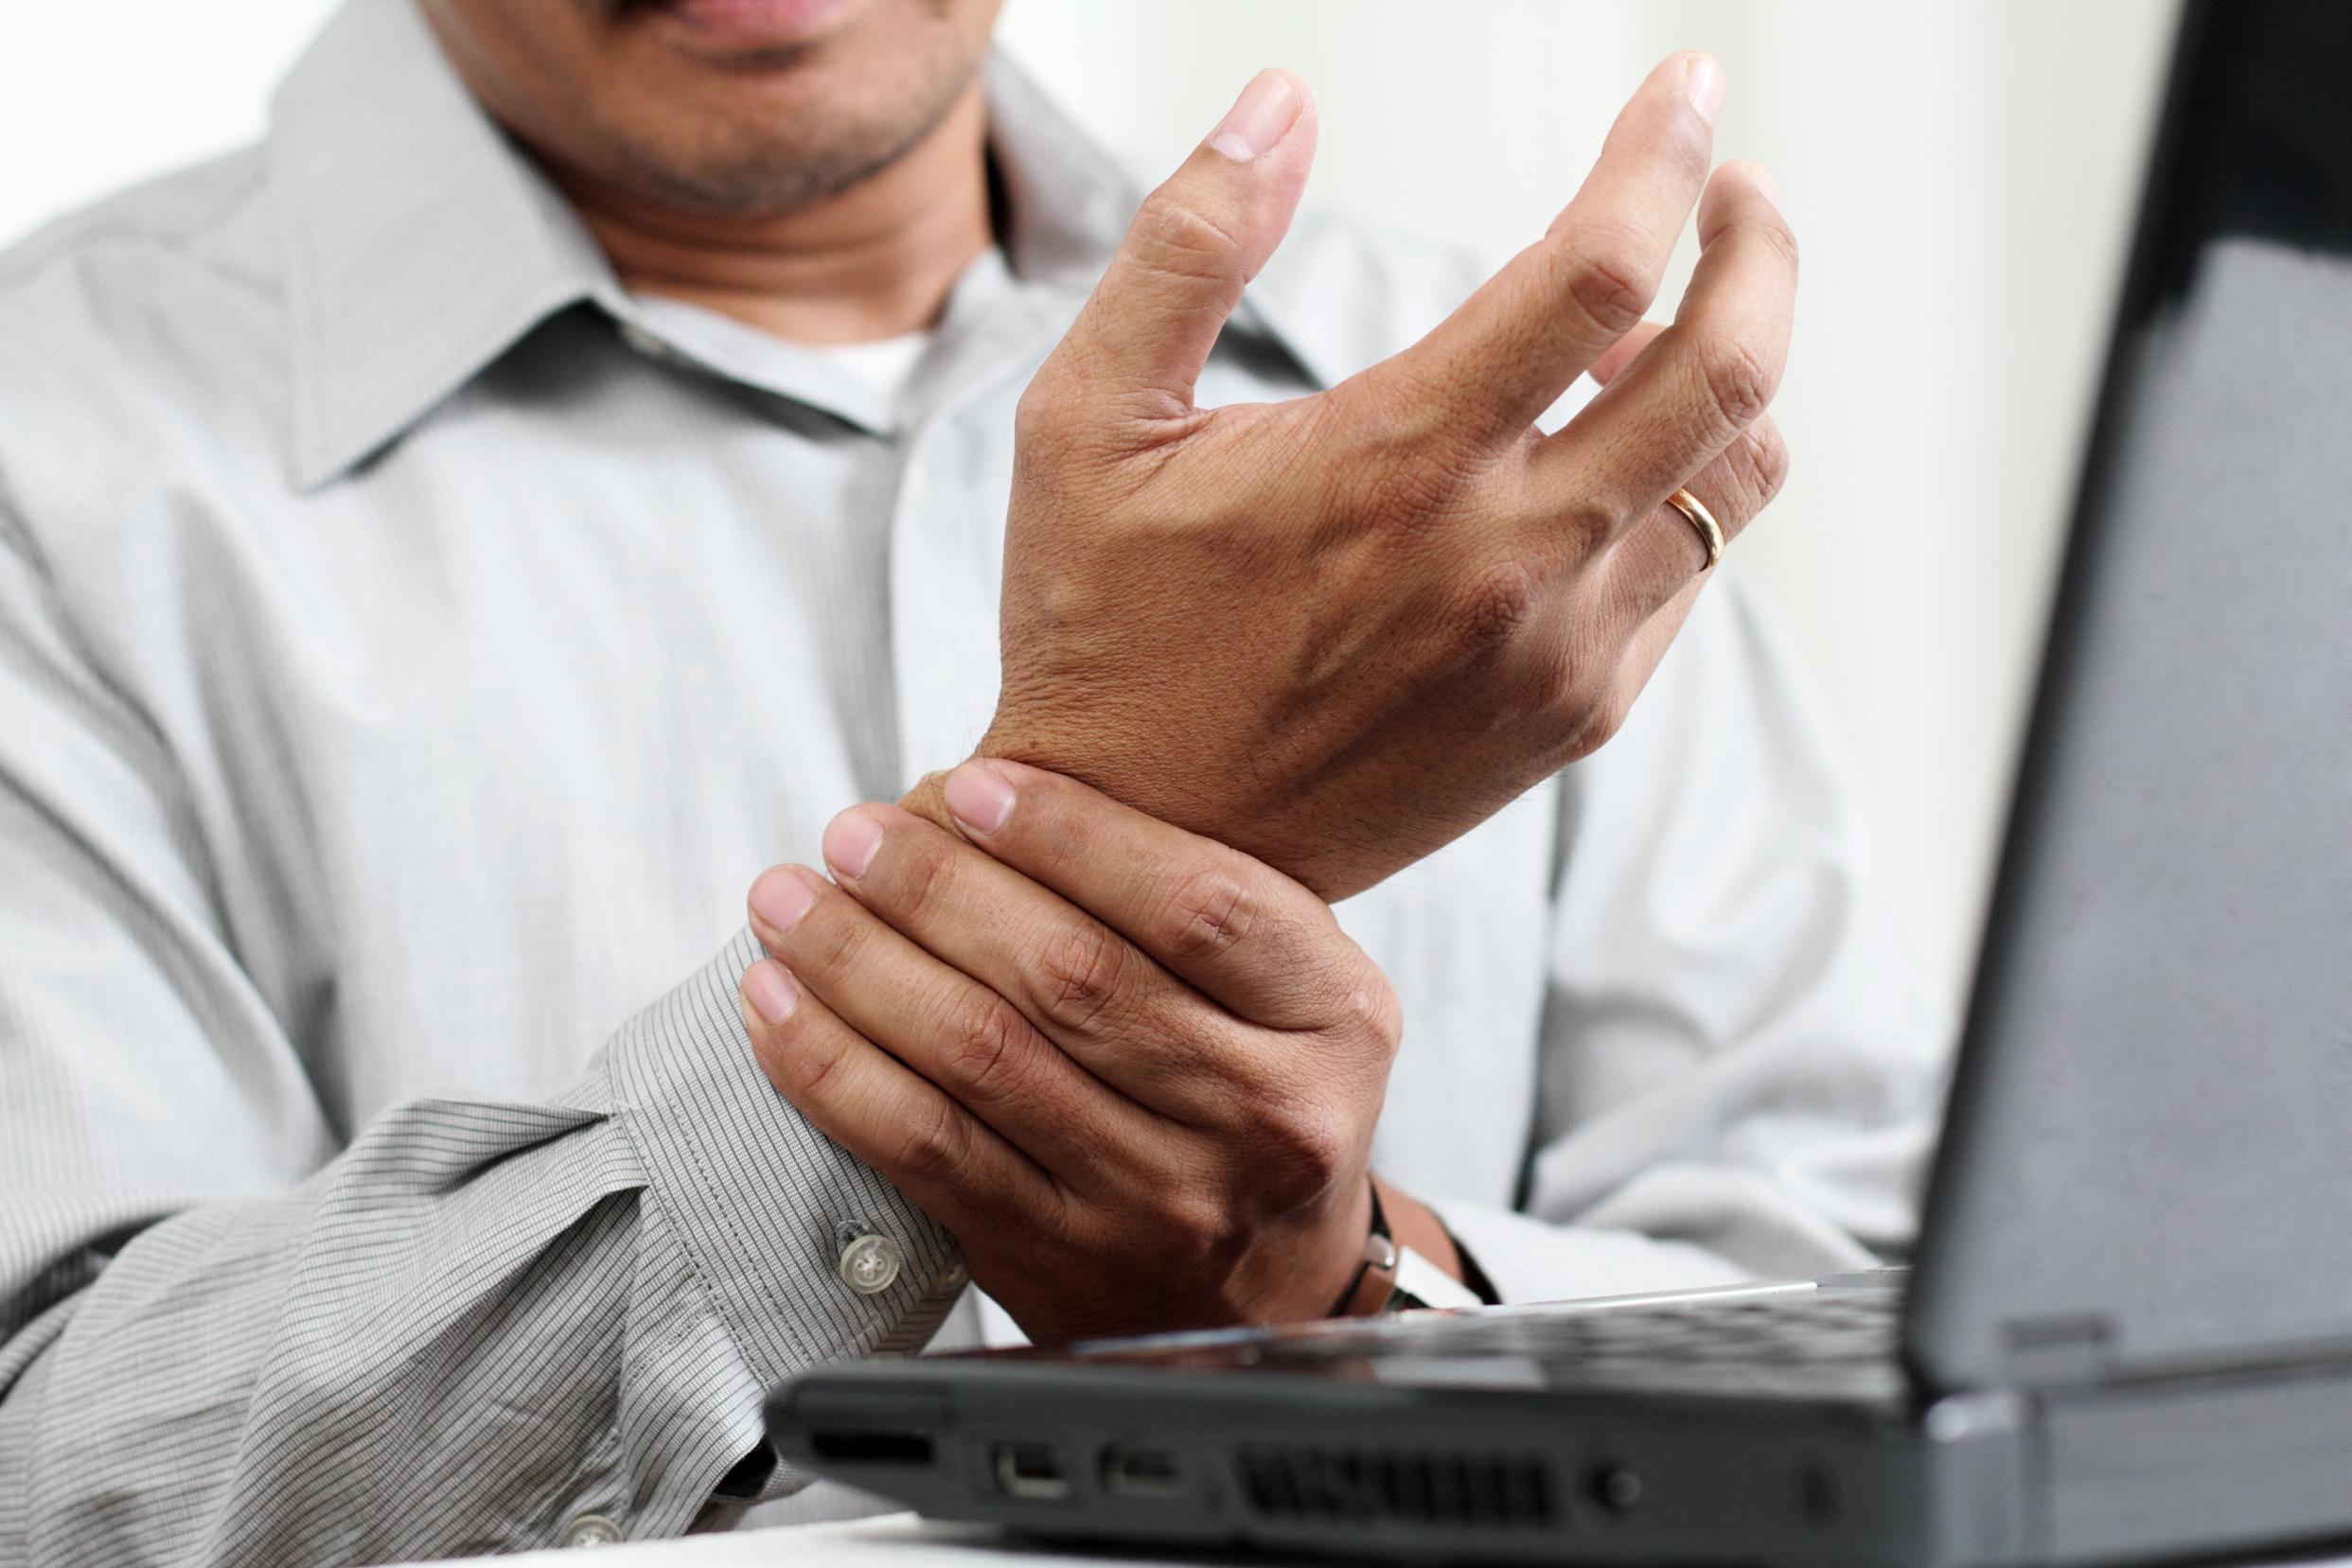 Carpal Tunnel Syndrome - image shutterstock_114444253-2 on https://www.drlisaowen.com